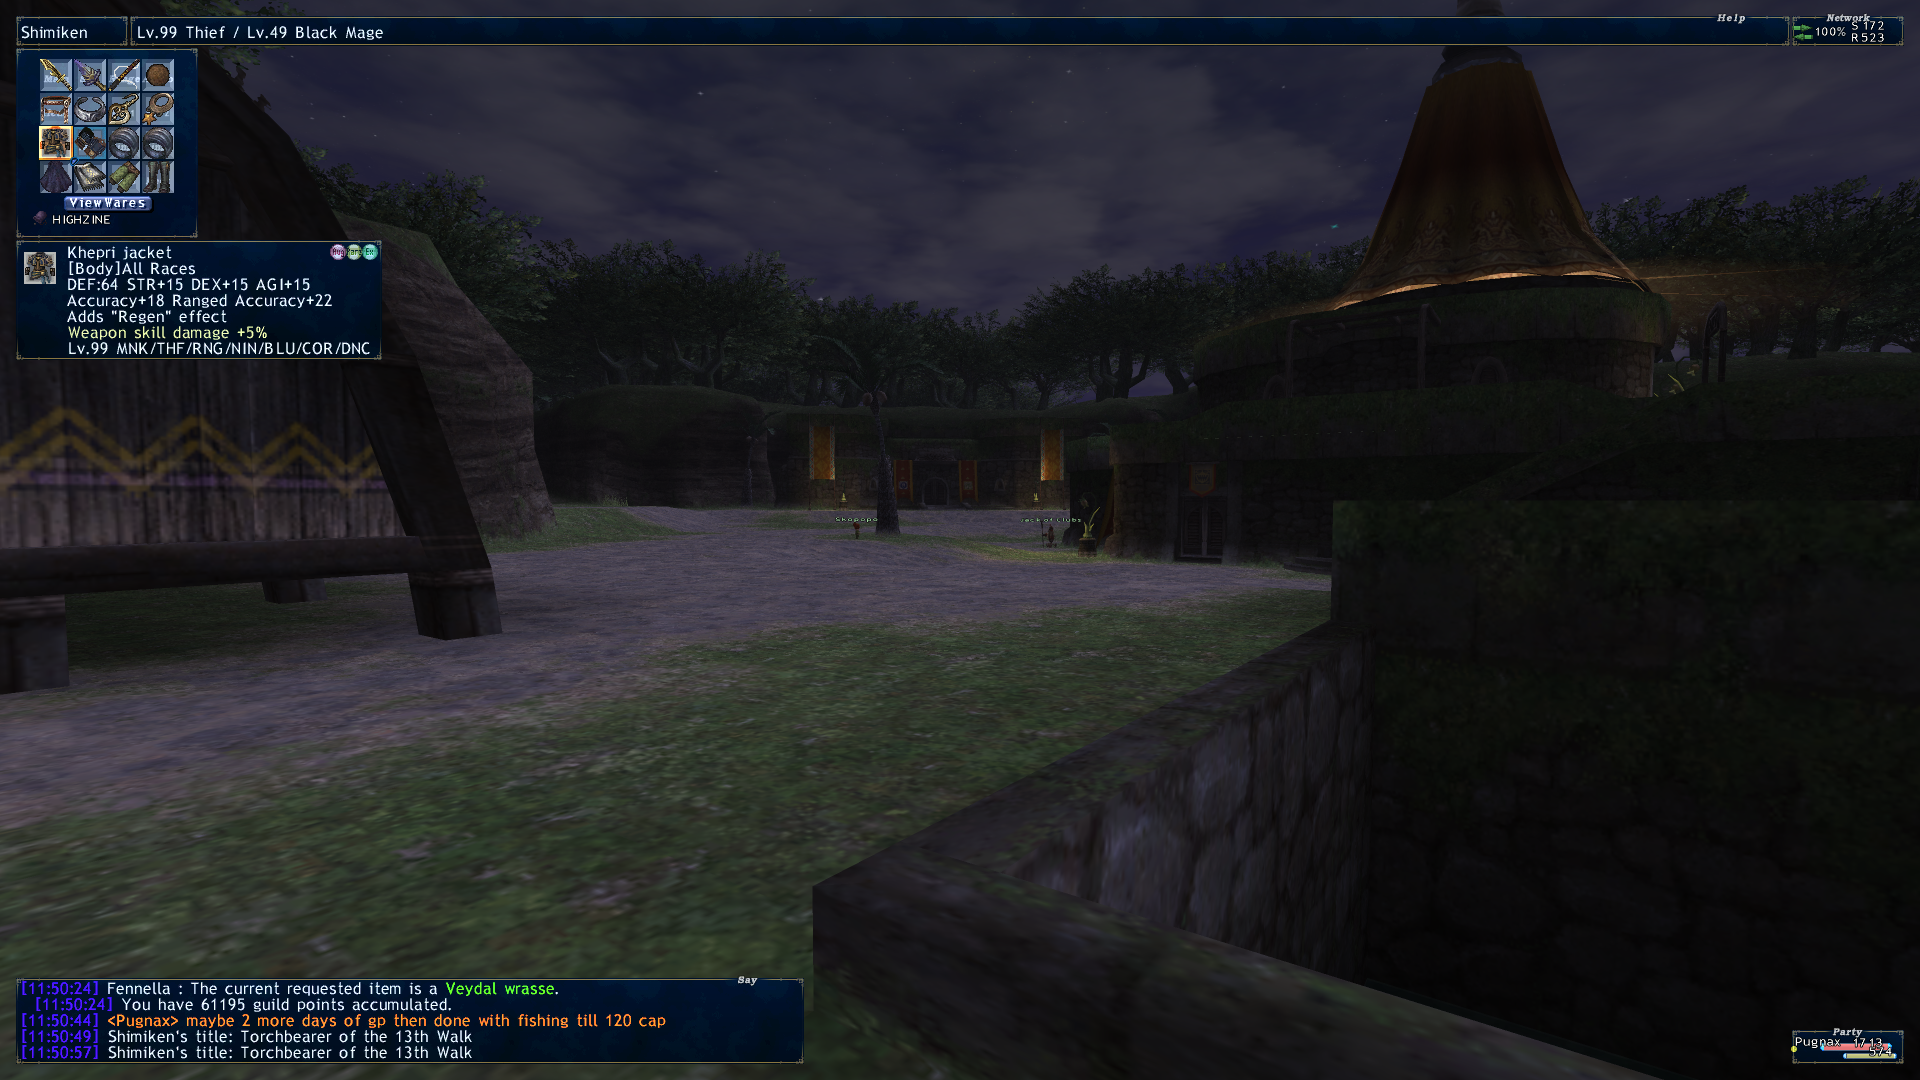 pugnax179 ffxi augment with stone after shit your breaking ended posted whats augments nekodance overshooting wiki magic attack bonus decided skirmish show augmented items staff post went today lucky